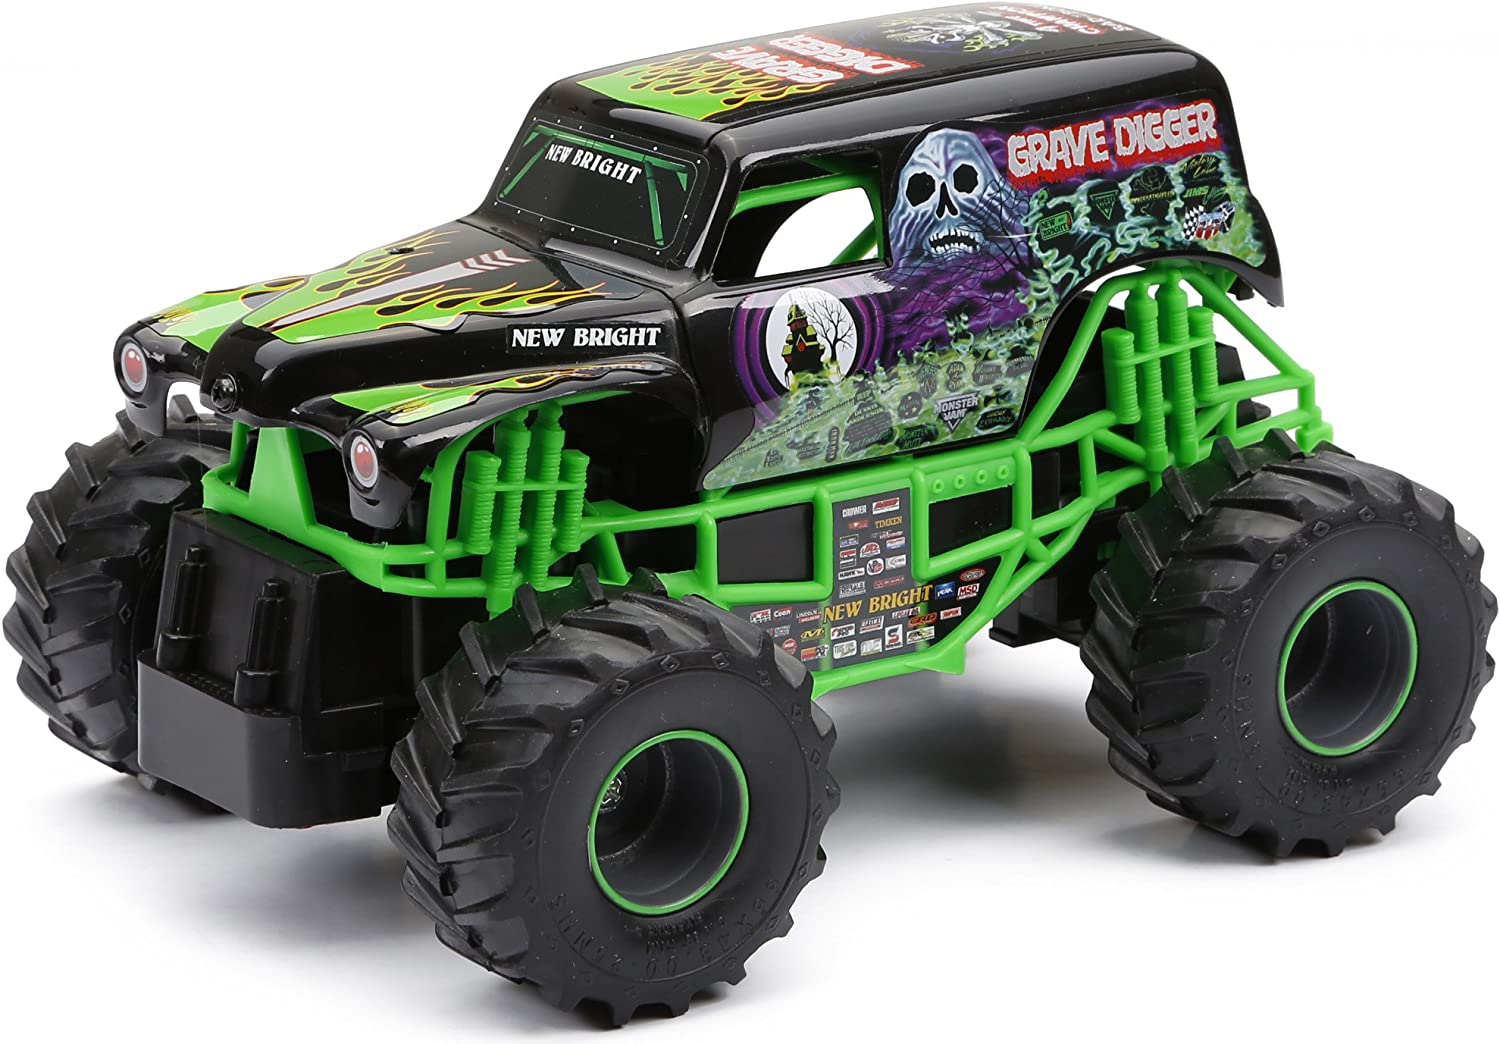 1ca226f4df4d New Bright F F Jam Grave Digger RC Car (1 24 Scale) by Bright Import ...